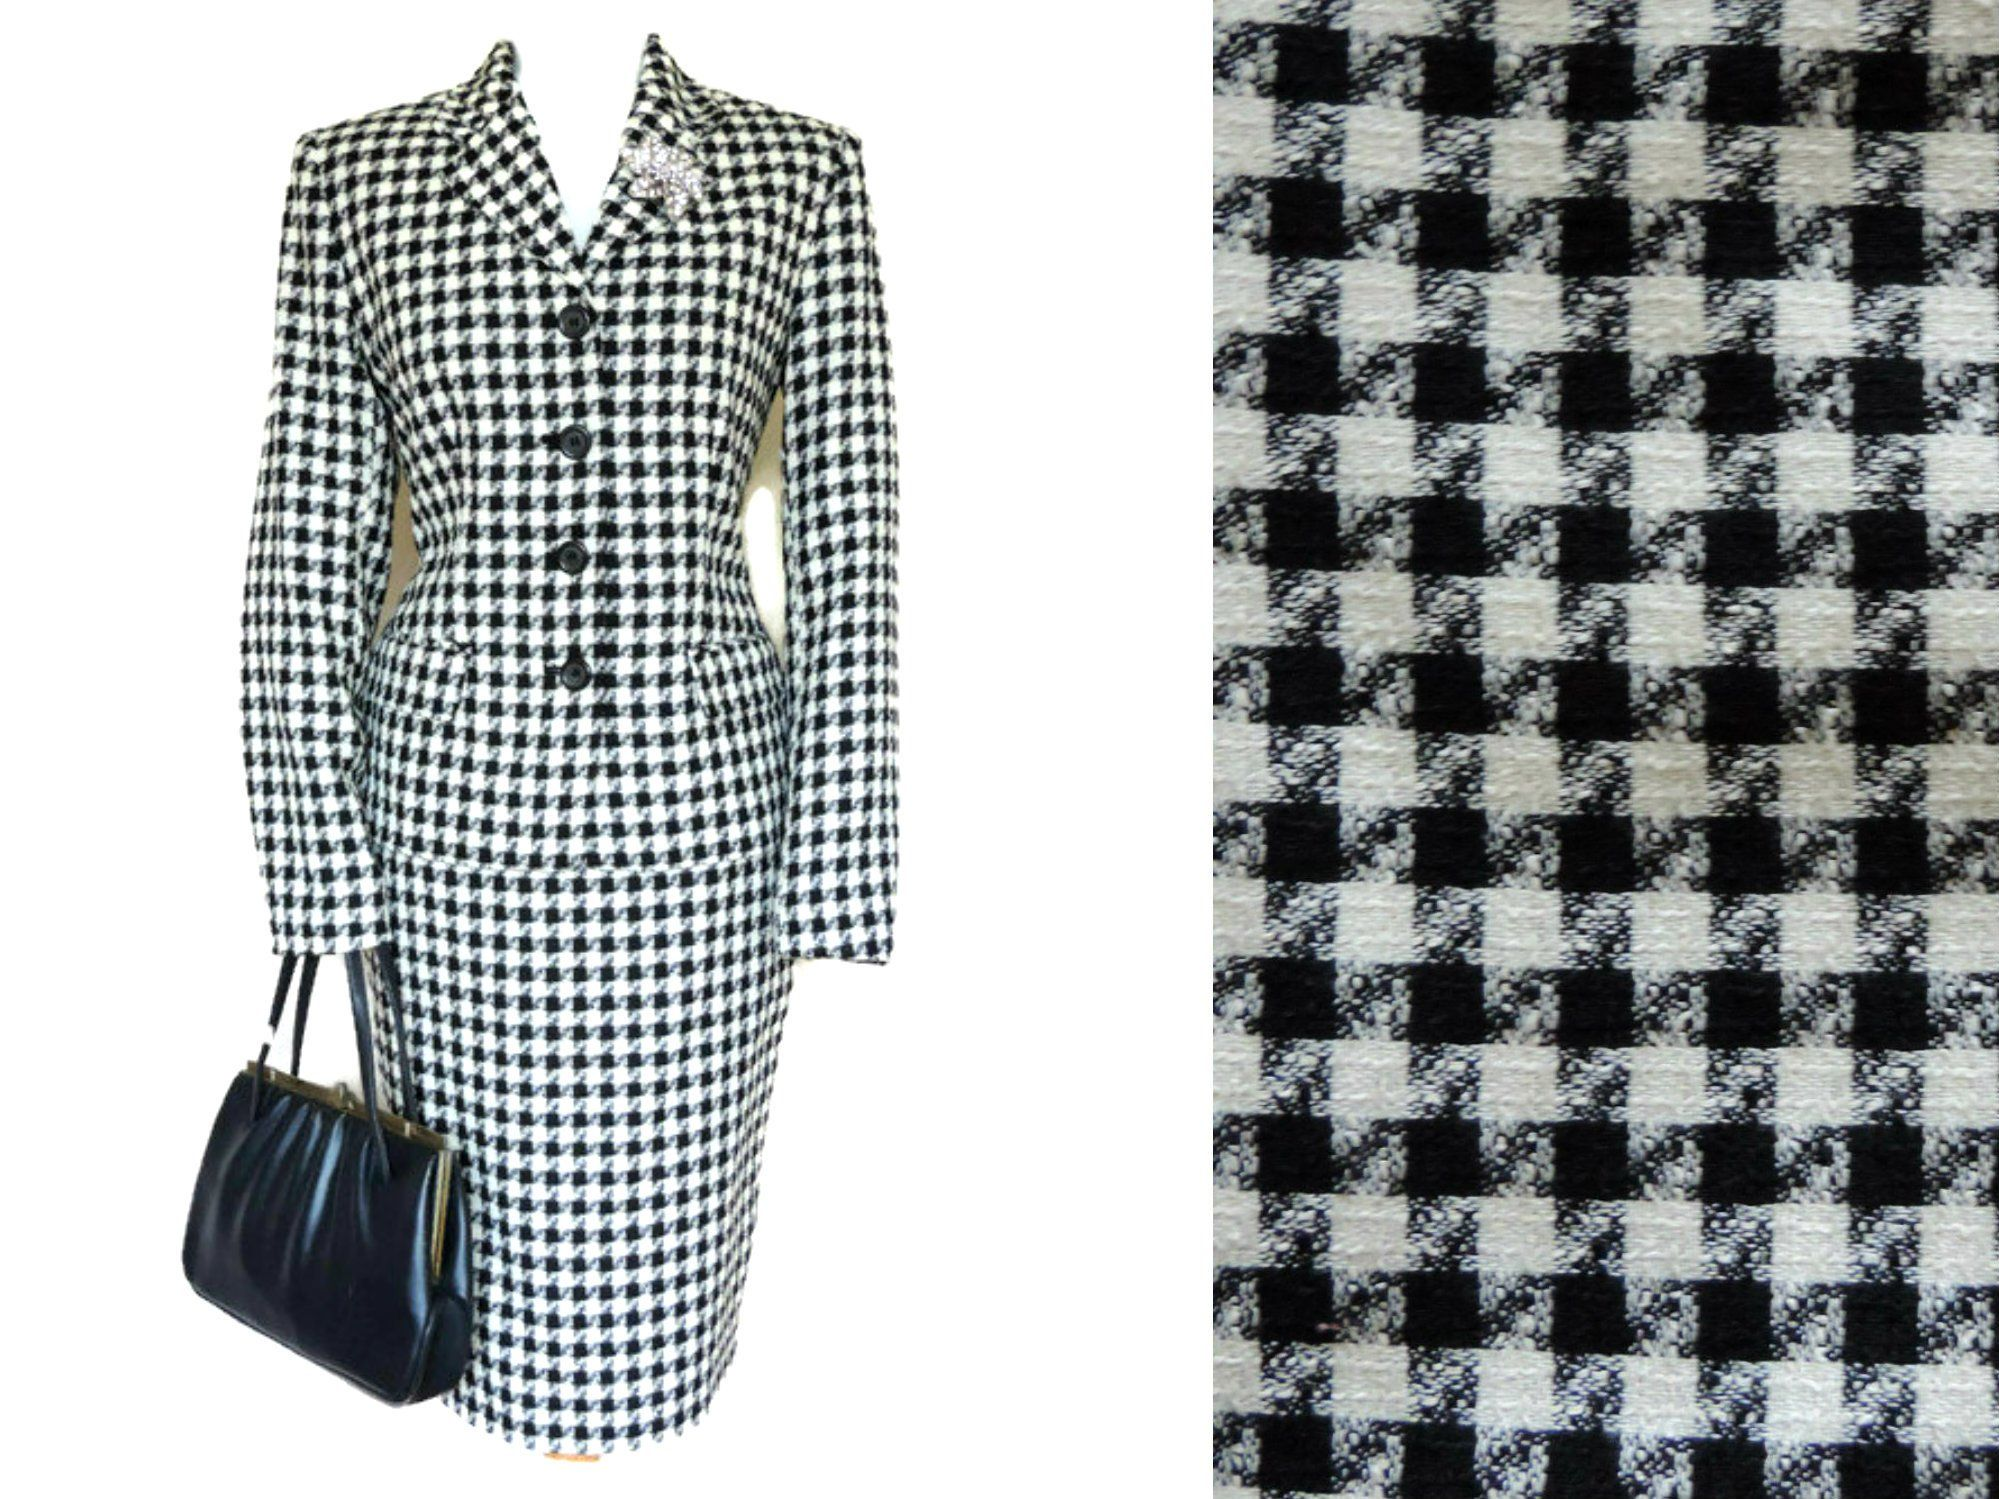 Vintage M S Suit In Black And White Dogtooth Check With Pencil Skirt And Fitted Jacket Ladies Skirt Suit S Vintage Fashion Skirt Suit Vintage Suits